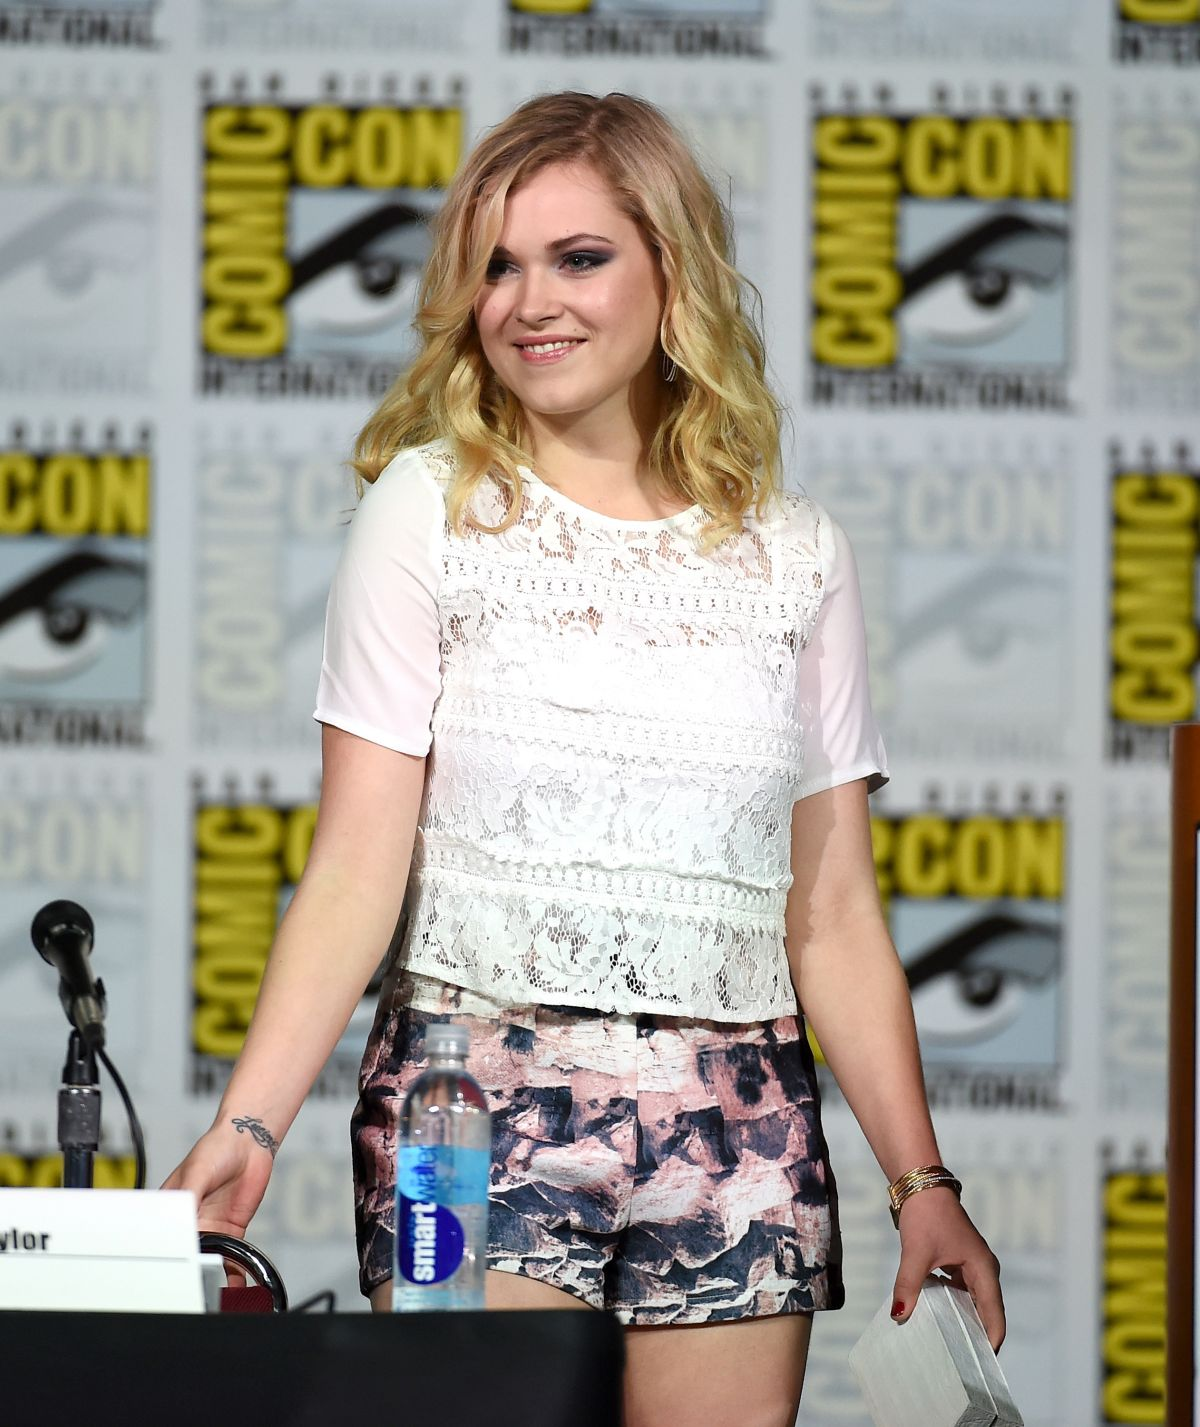 ELIZA TAYLOR at Fan Favorites Panel at Comic Con in San Diego